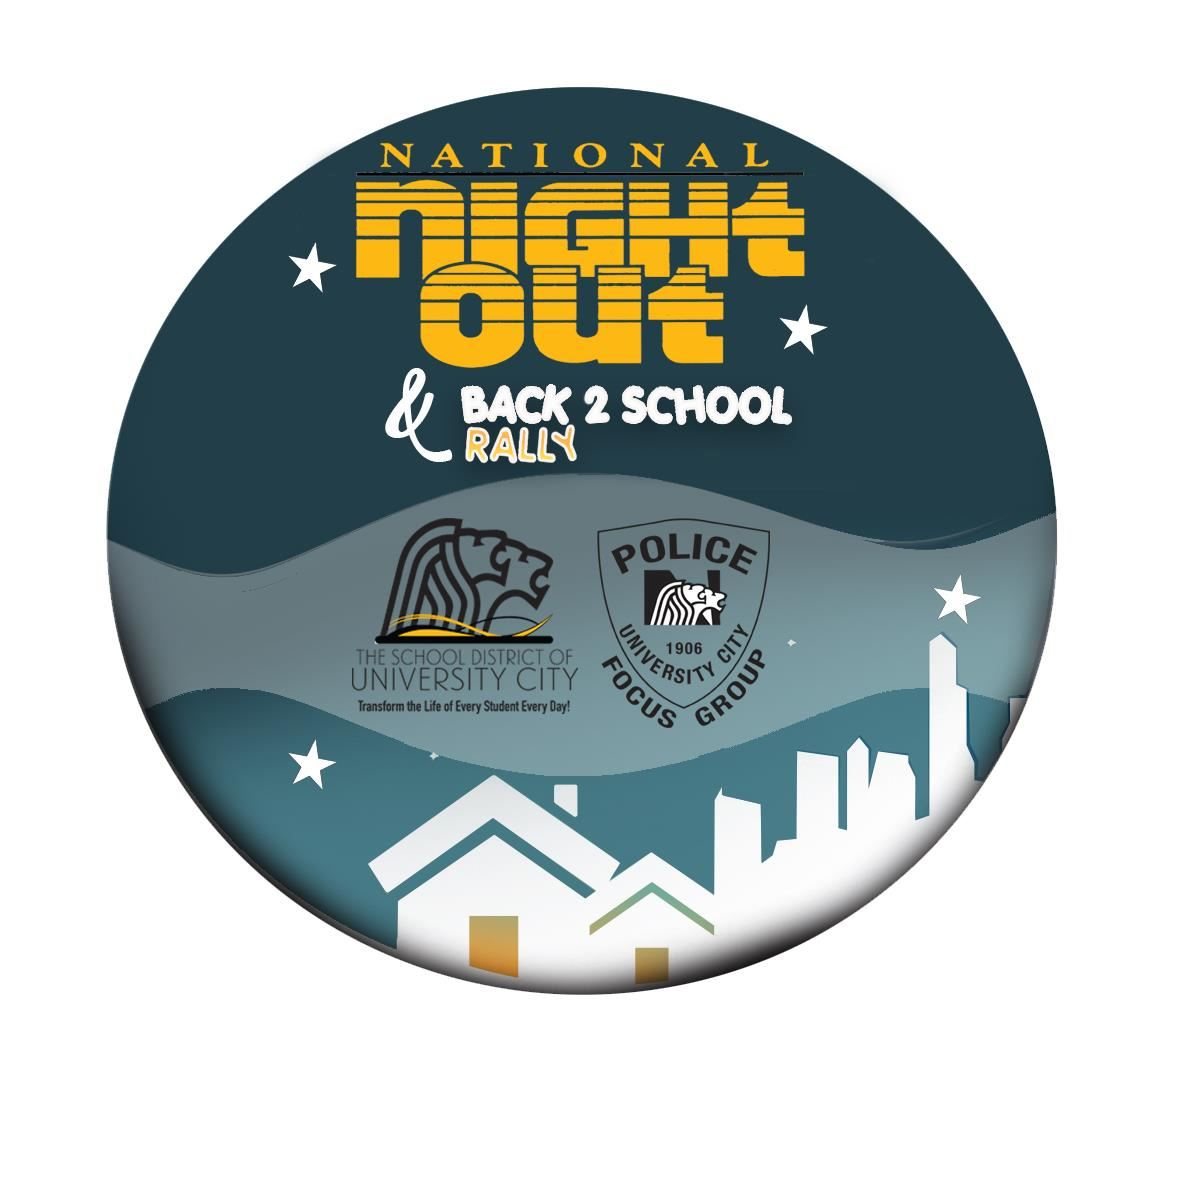 National Night Out & Back To School Rally Circle Button Logo